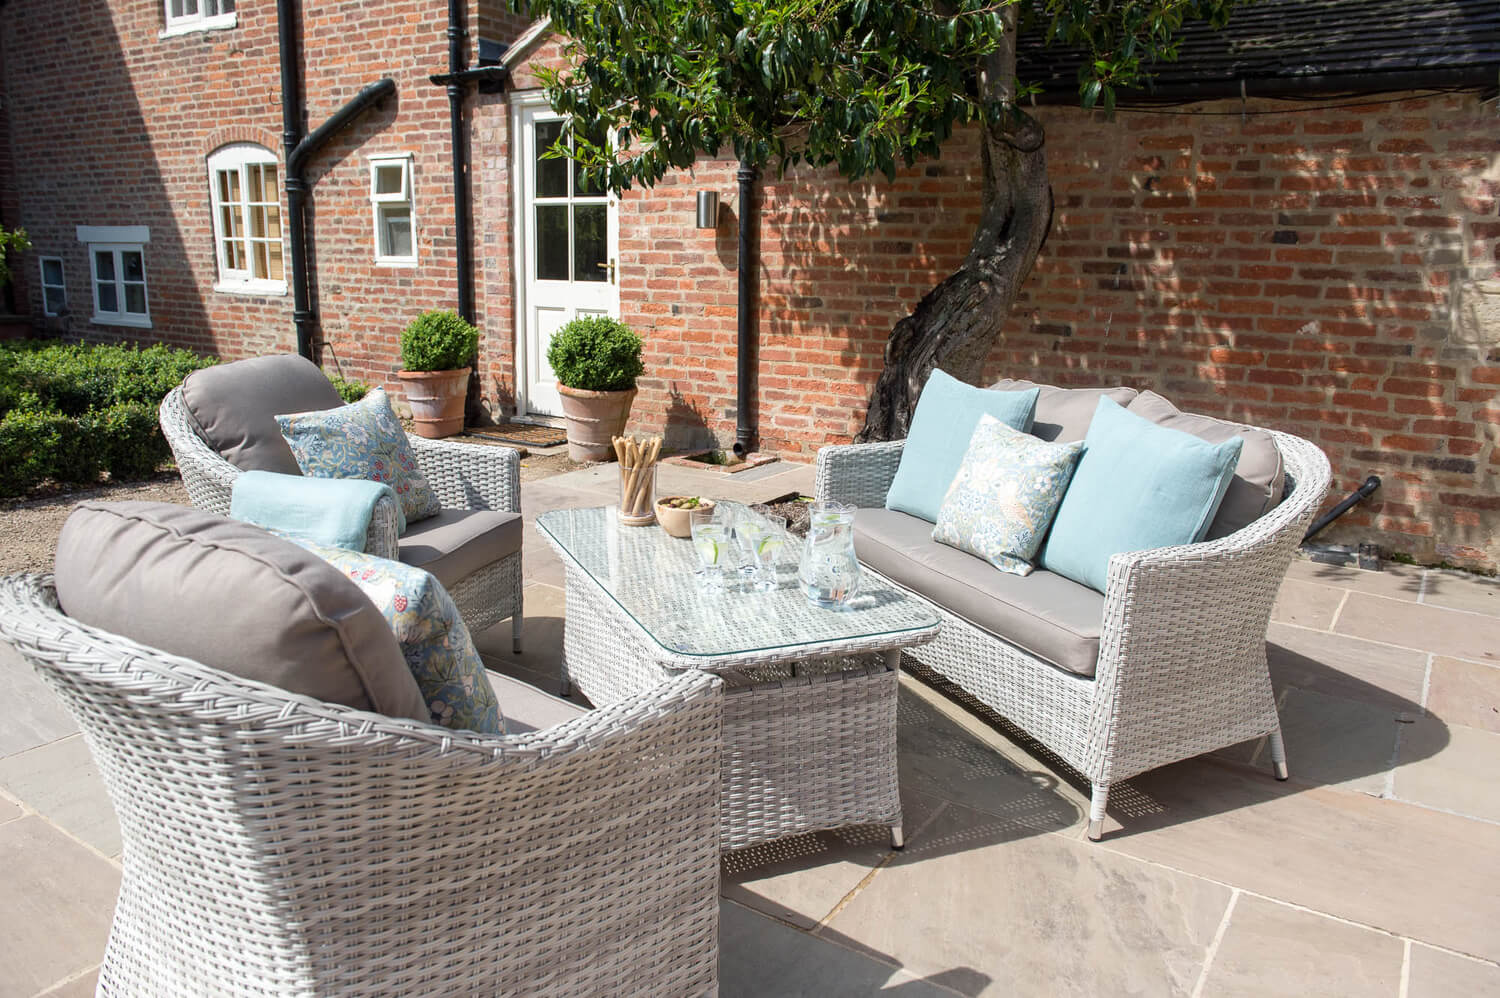 Image of Cotswold Rattan Weave Lounge Furniture and Table Set. Cotswold Rattan Weave Lounge Furniture and Table Set    589